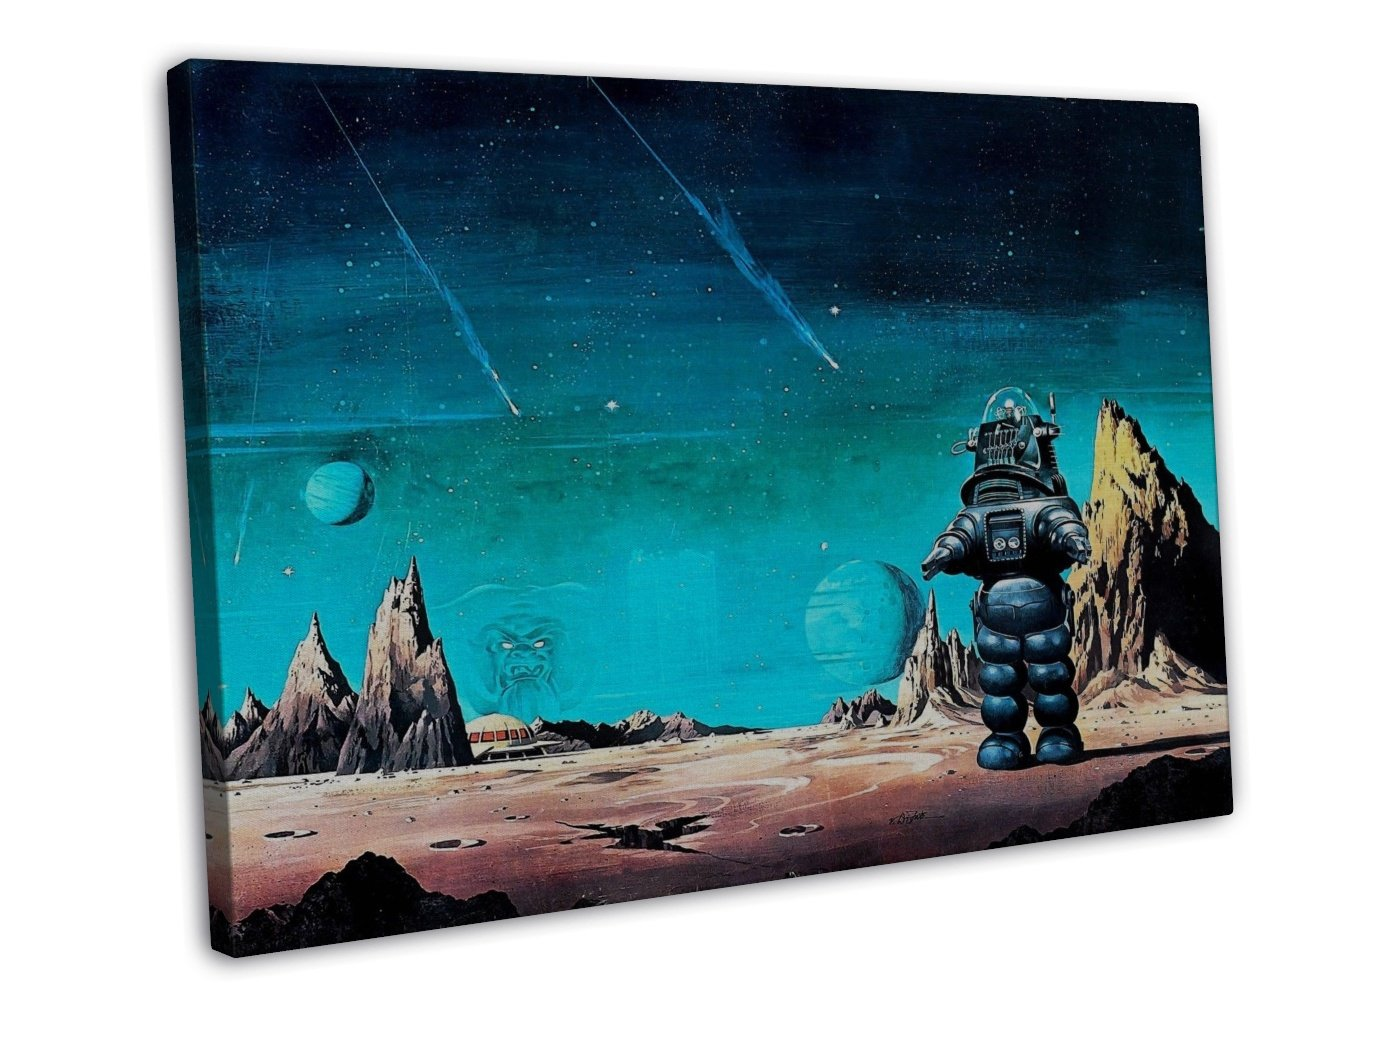 Painting Robby Robot Planet Space Art 20x16 FRAMED CANVAS Print Decor